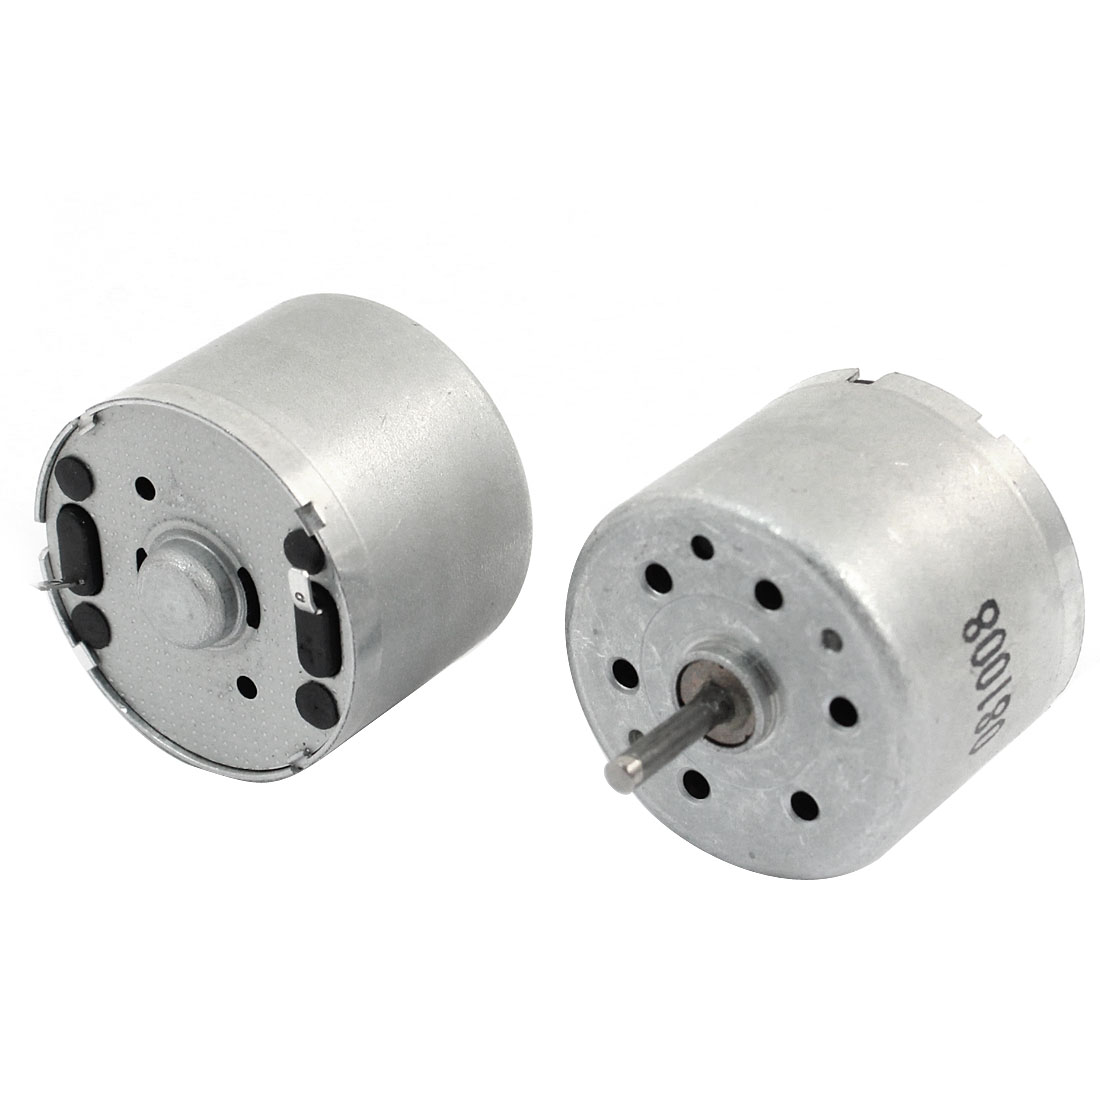 2 Pcs 2mm Shaft 24mm Diameter Electric Mini Motor 4200RPM DC 3.0-9.0V